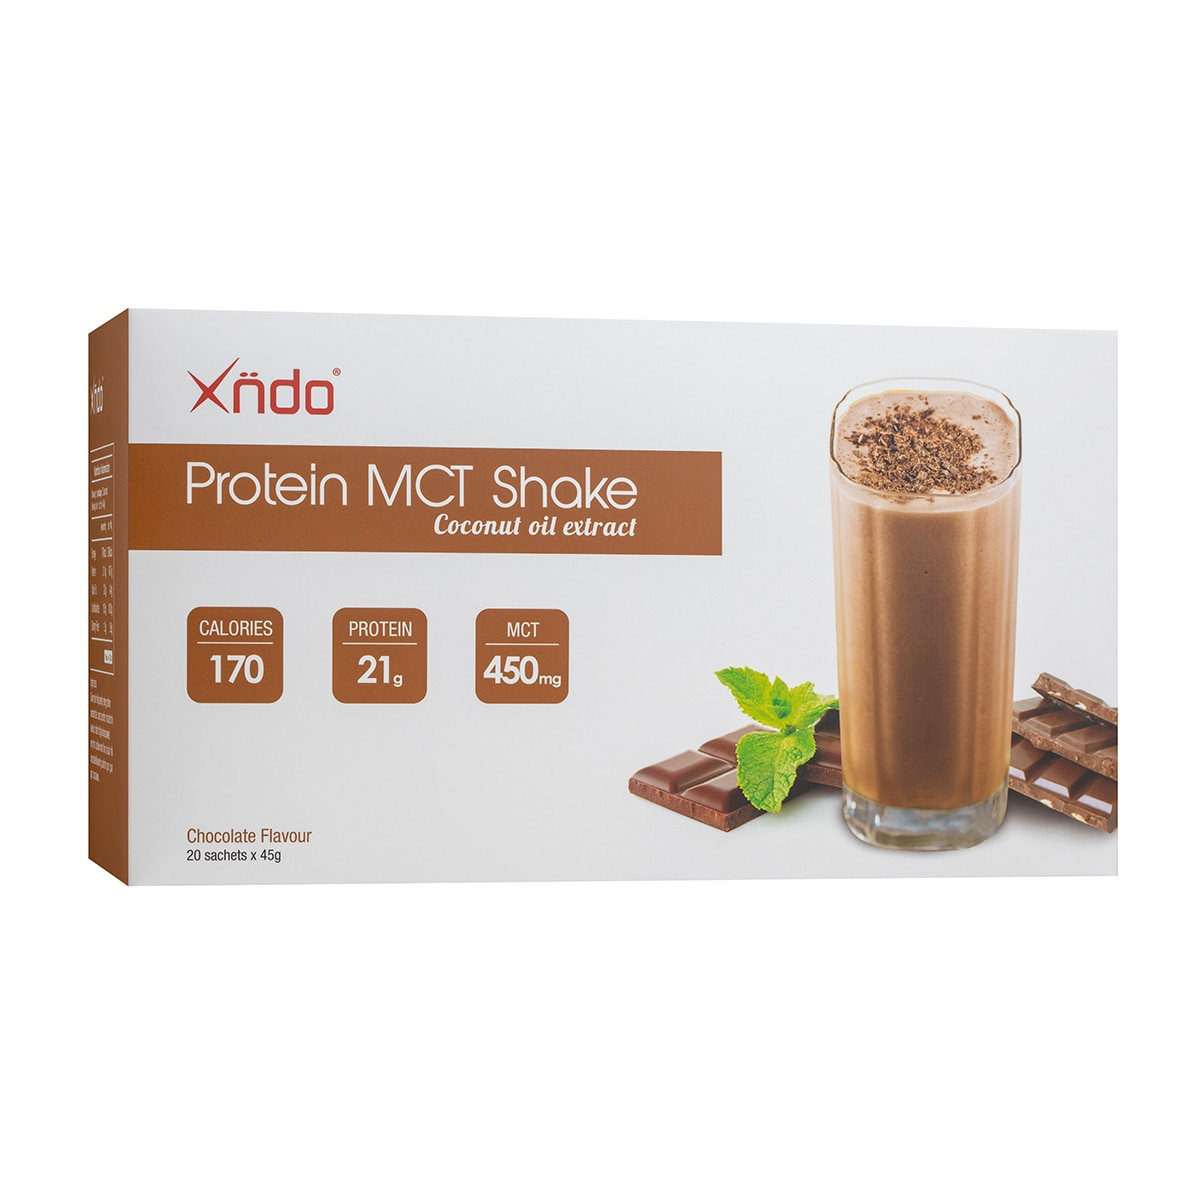 XNDOProtein MCT Shake Choc Flavour 45g per Sachet,Health DrinksFREE (1) Portable Fan for a minimum P900 worth of purchase on participating items